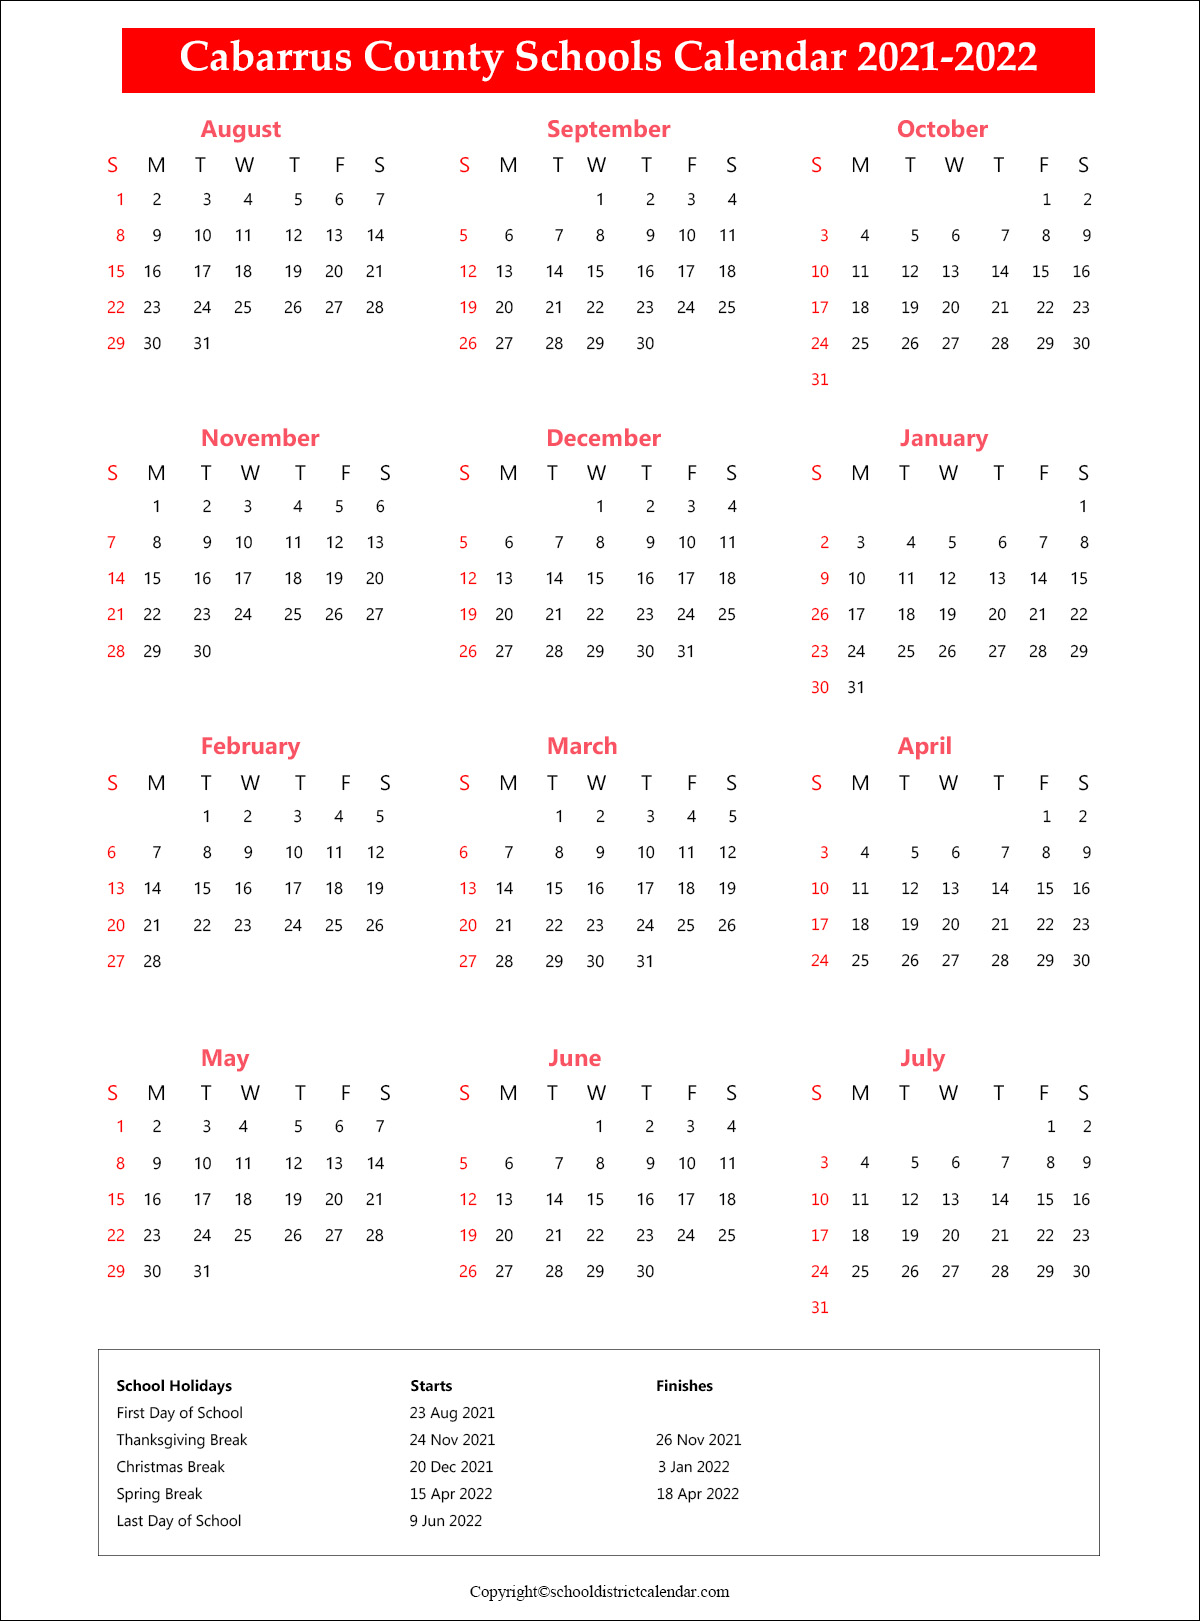 Cabarrus County Schools District Calendar 2021